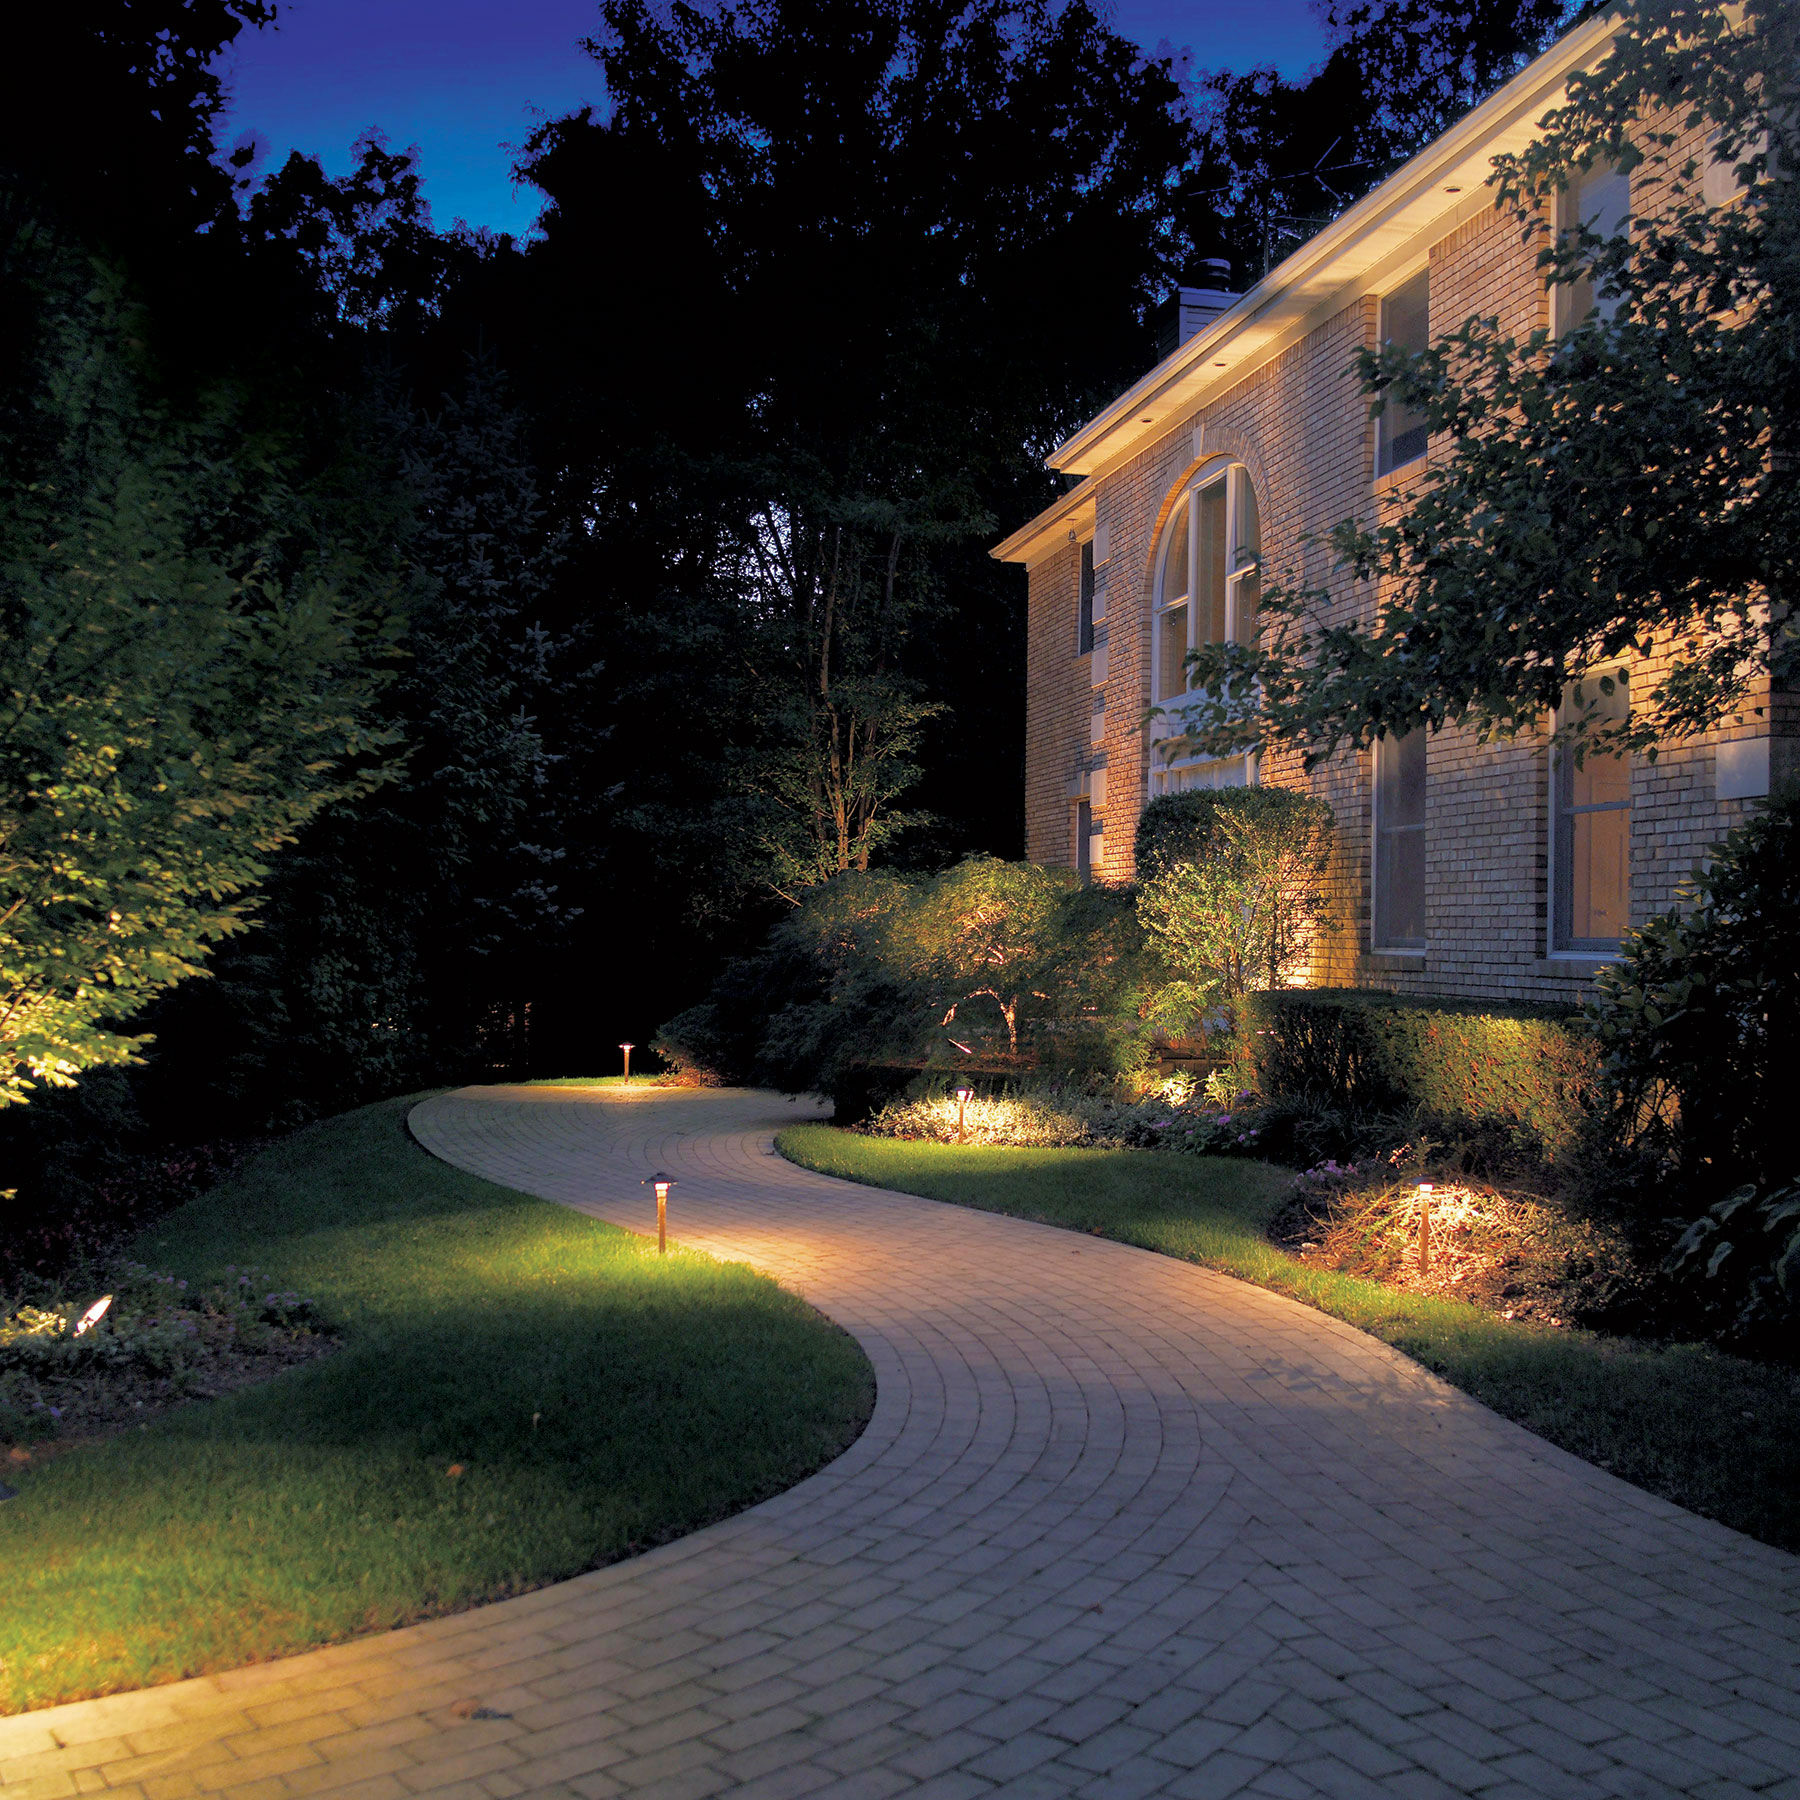 Led outdoor lighting for your minneapolis area home save money on lamp replacement energy costs aloadofball Gallery